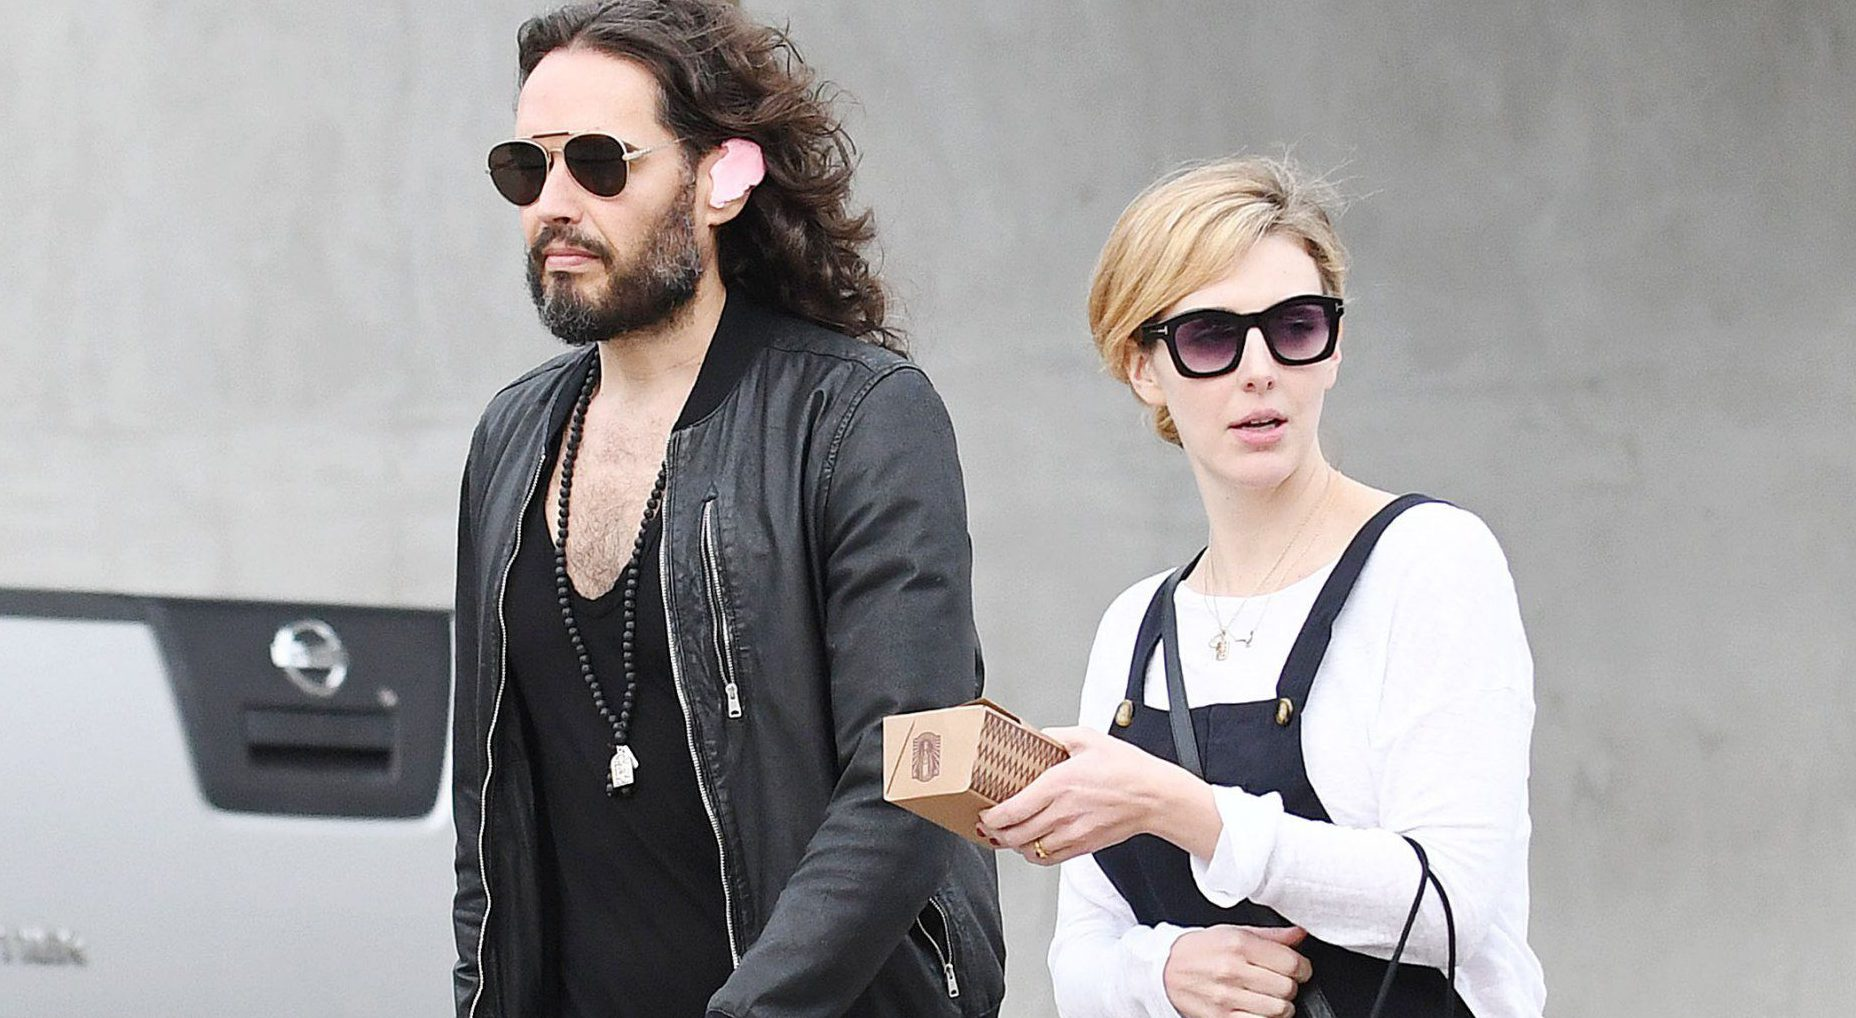 Russell Brand to become a dad for second time 'any day now'